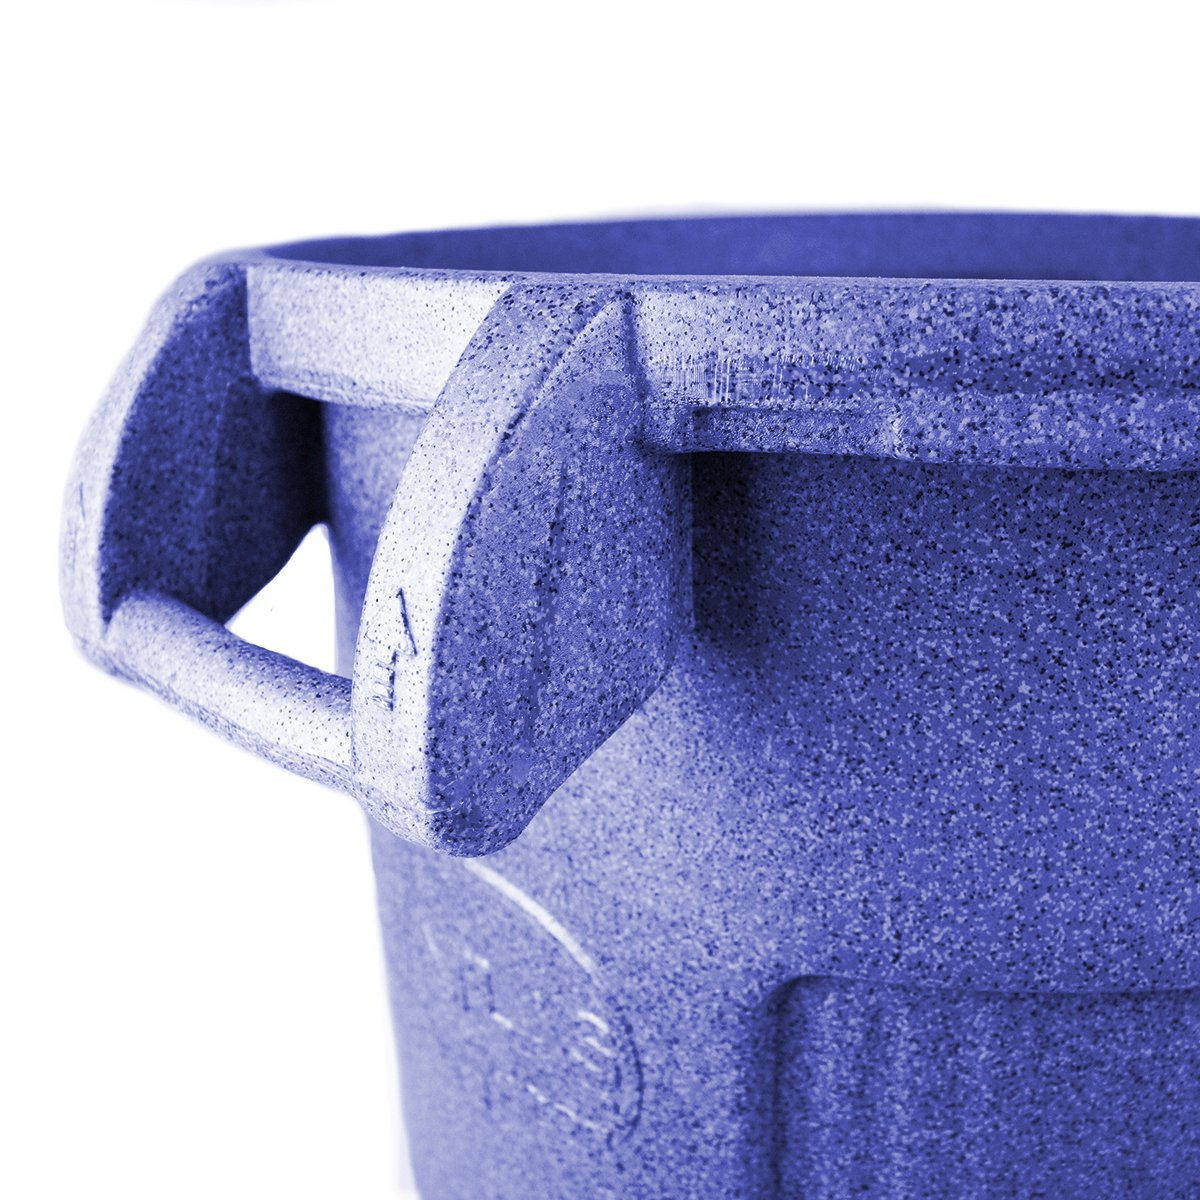 UltraSource Commercial Atlas Waste Container, 32 gal, Blue by UltraSource (Image #3)